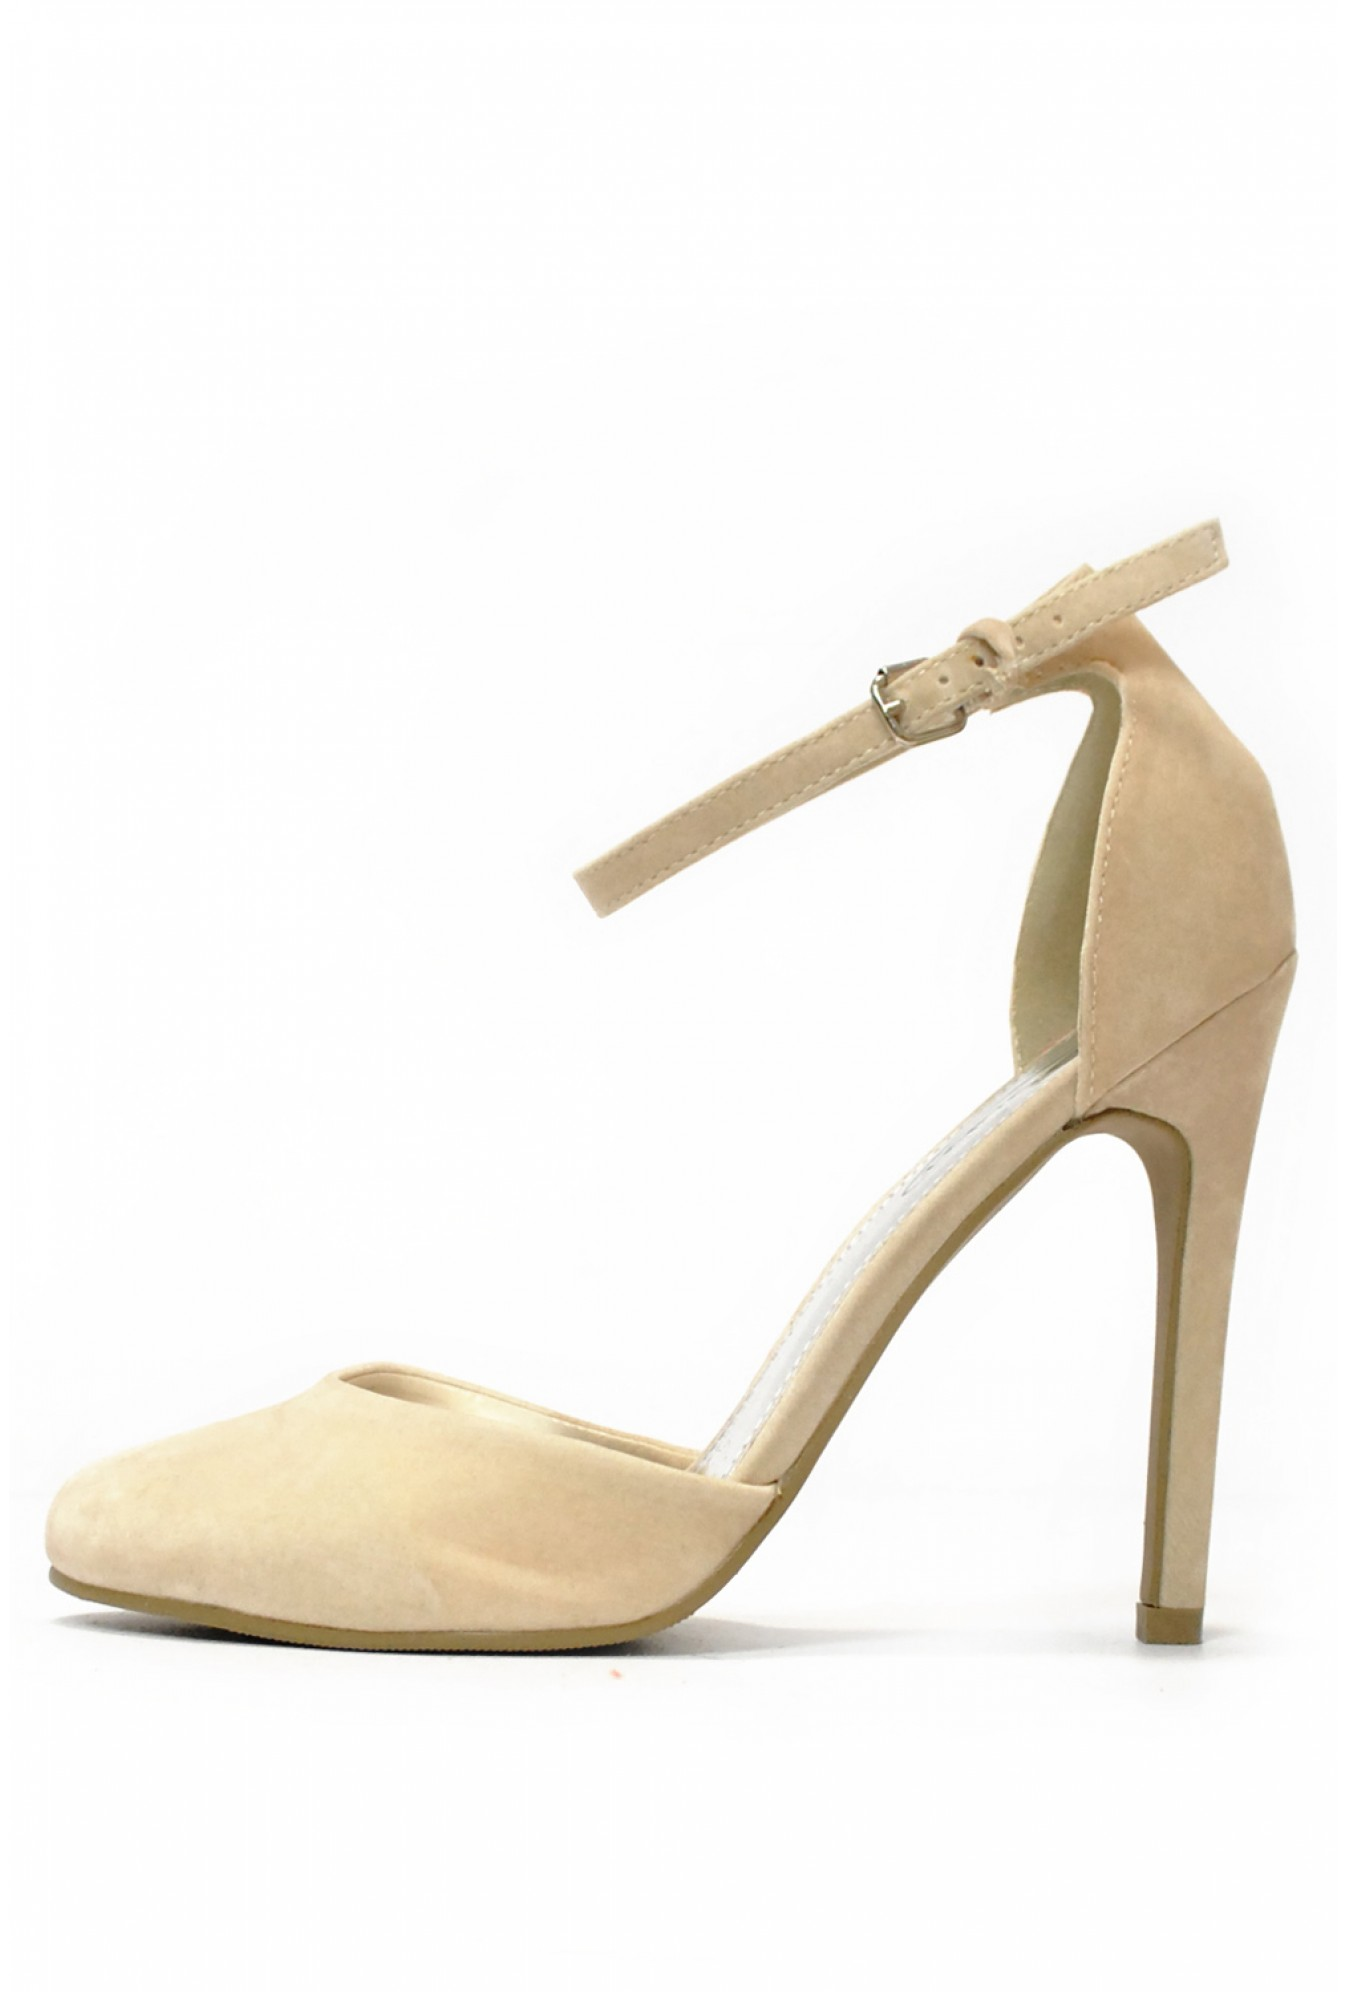 b61a6229a9f9 More Views. Nadia Ankle Strap Mid Heel Shoes in Cream